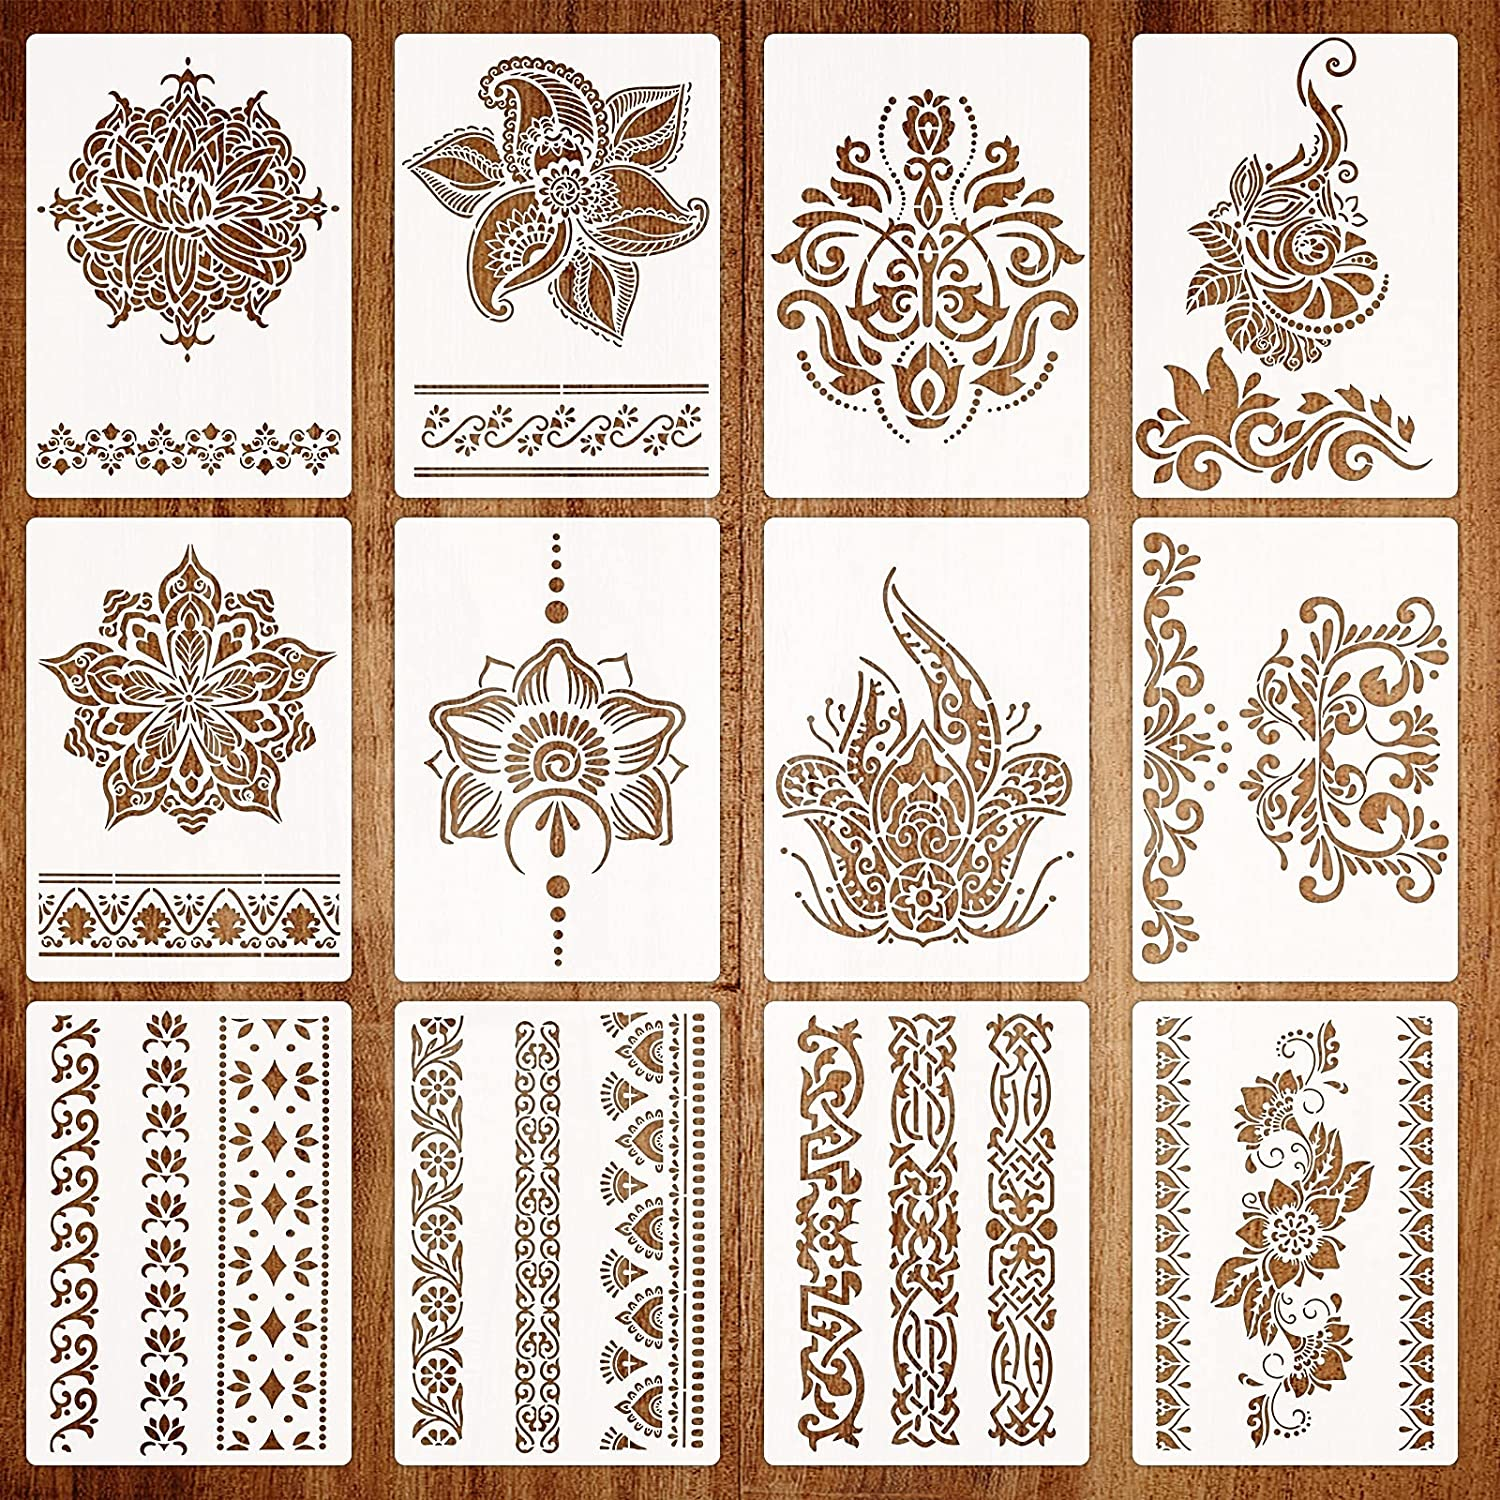 12Pcs Mandala Border Stencils for Painting on Wood, Flower Border Stencils Reusable DIY Craft Stencils for Floor Wall Tile Fabric Furniture Stencils Painting